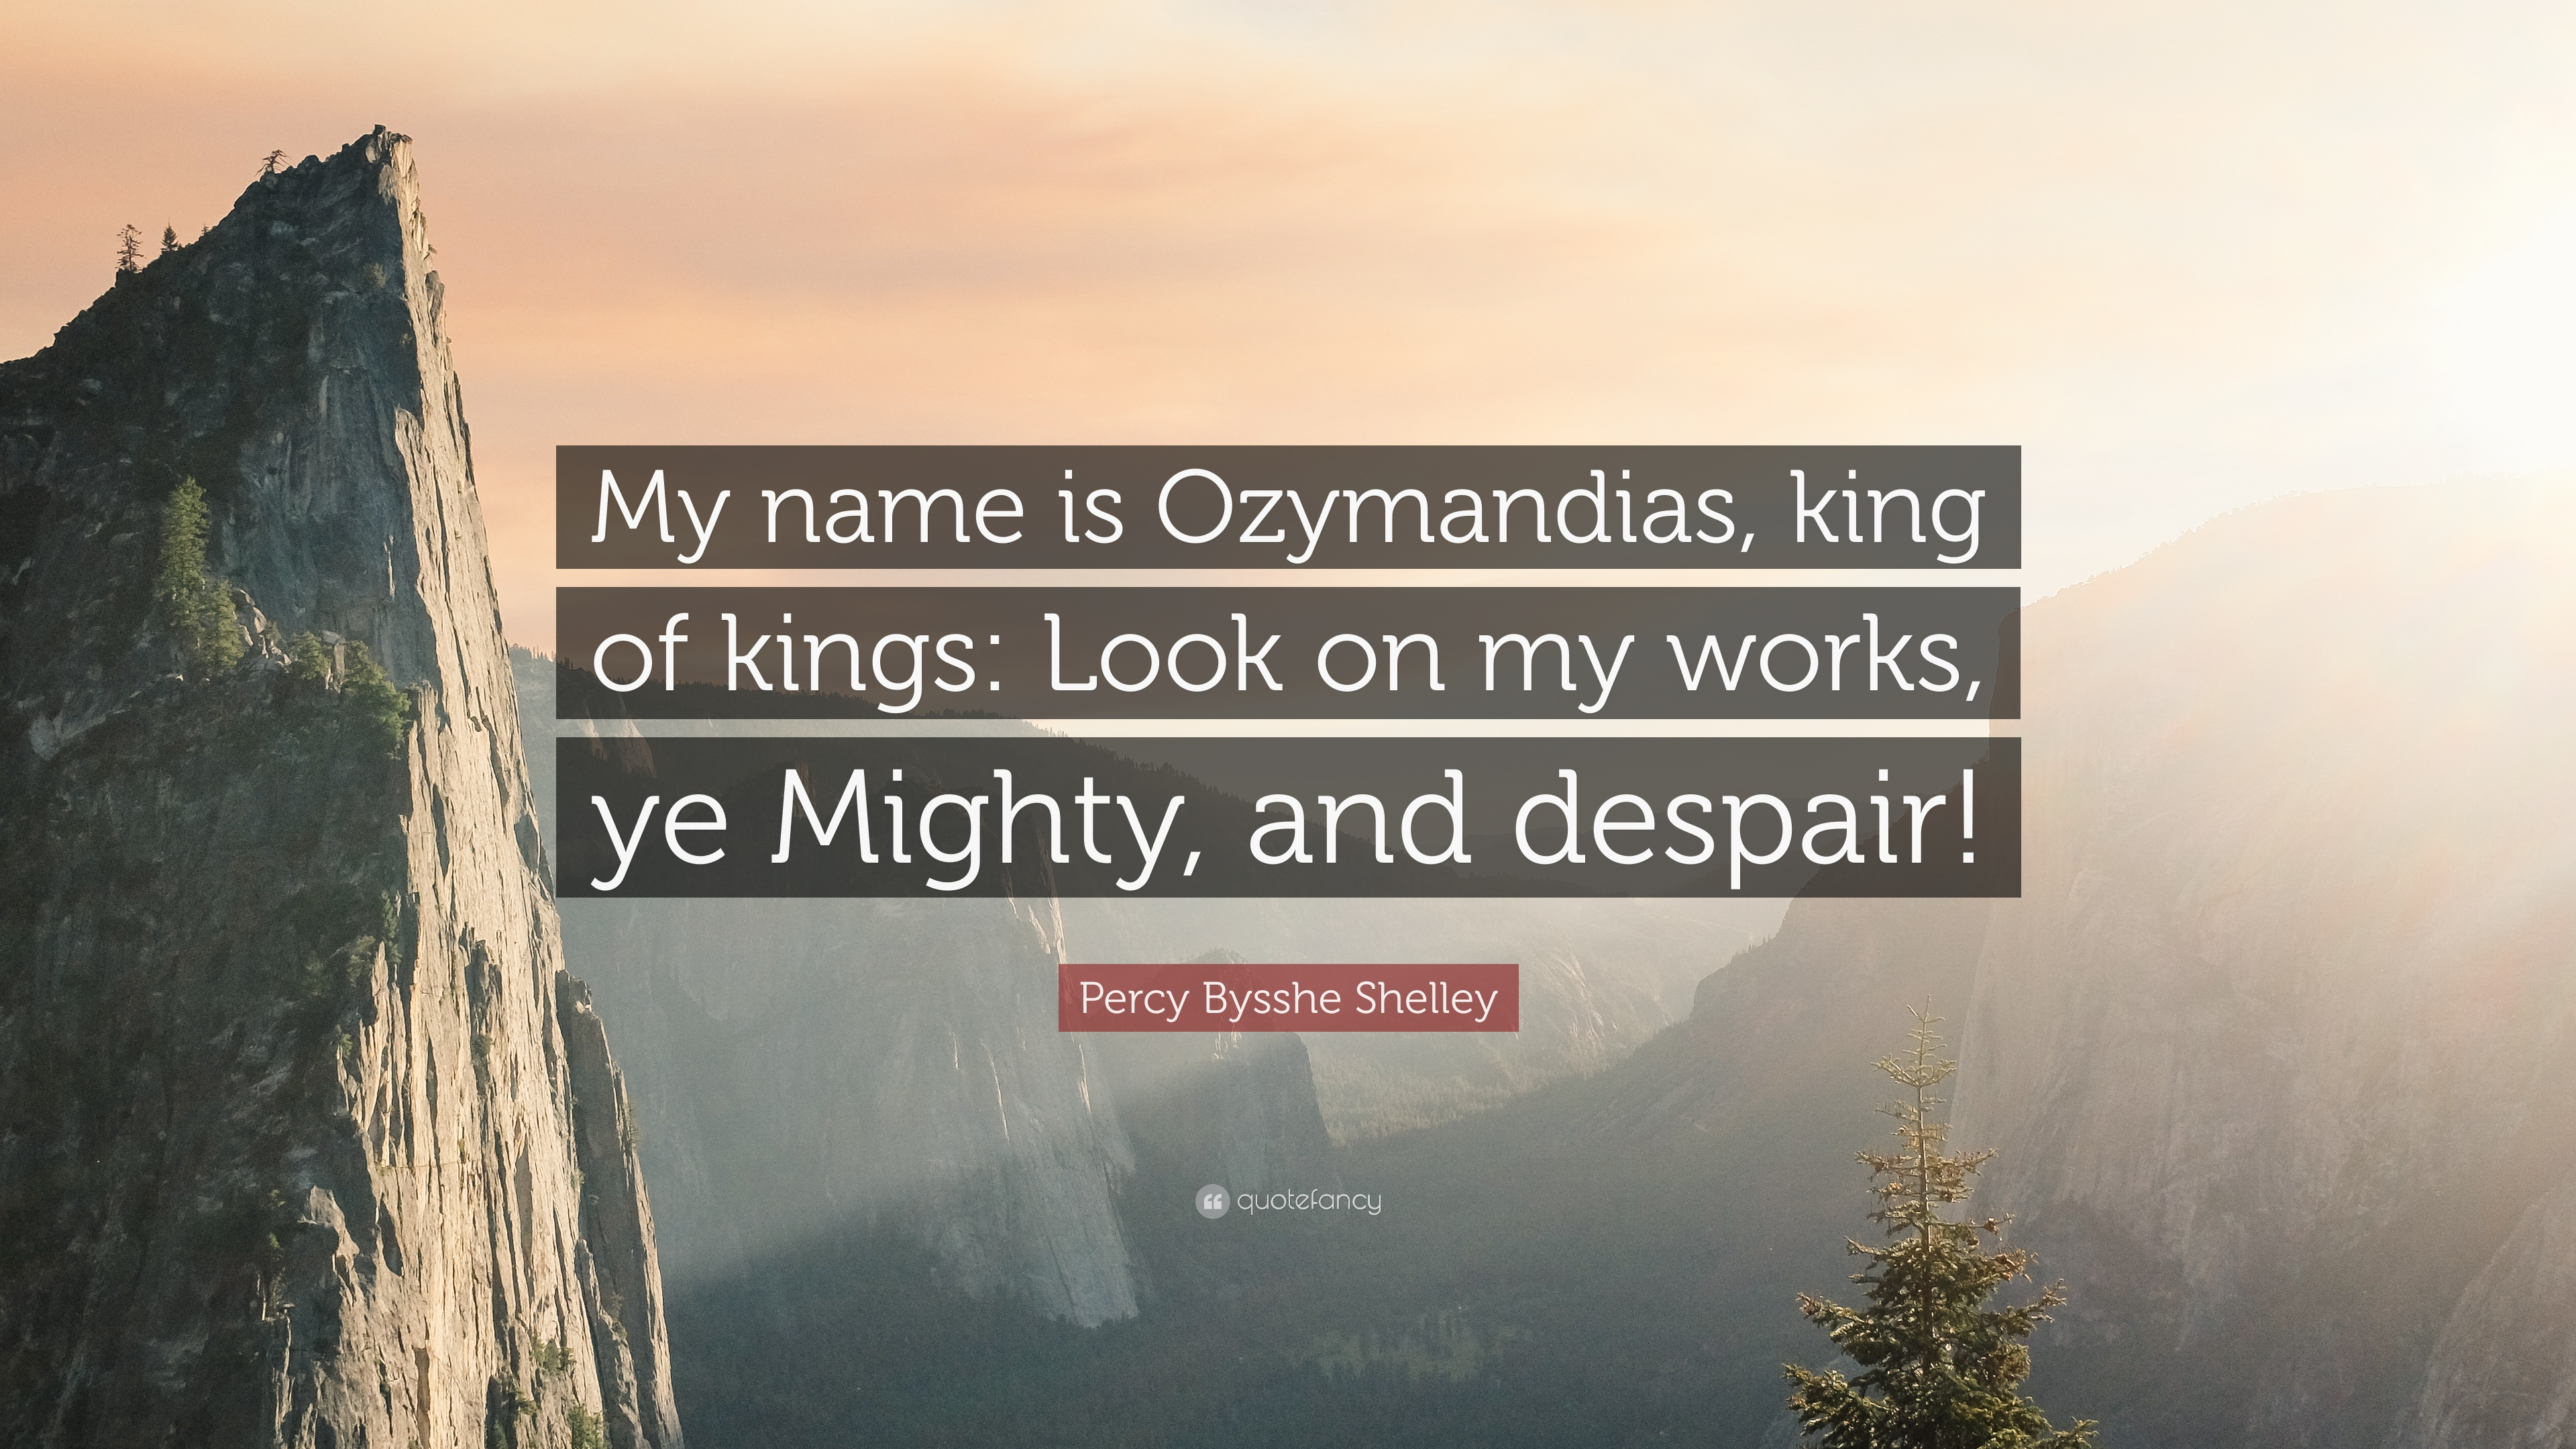 Percy bysshe shelley quotes quotesgram - Filename 347805 Percy Bysshe Shelley Quote My Name Is Ozymandias King Of Kings Jpg